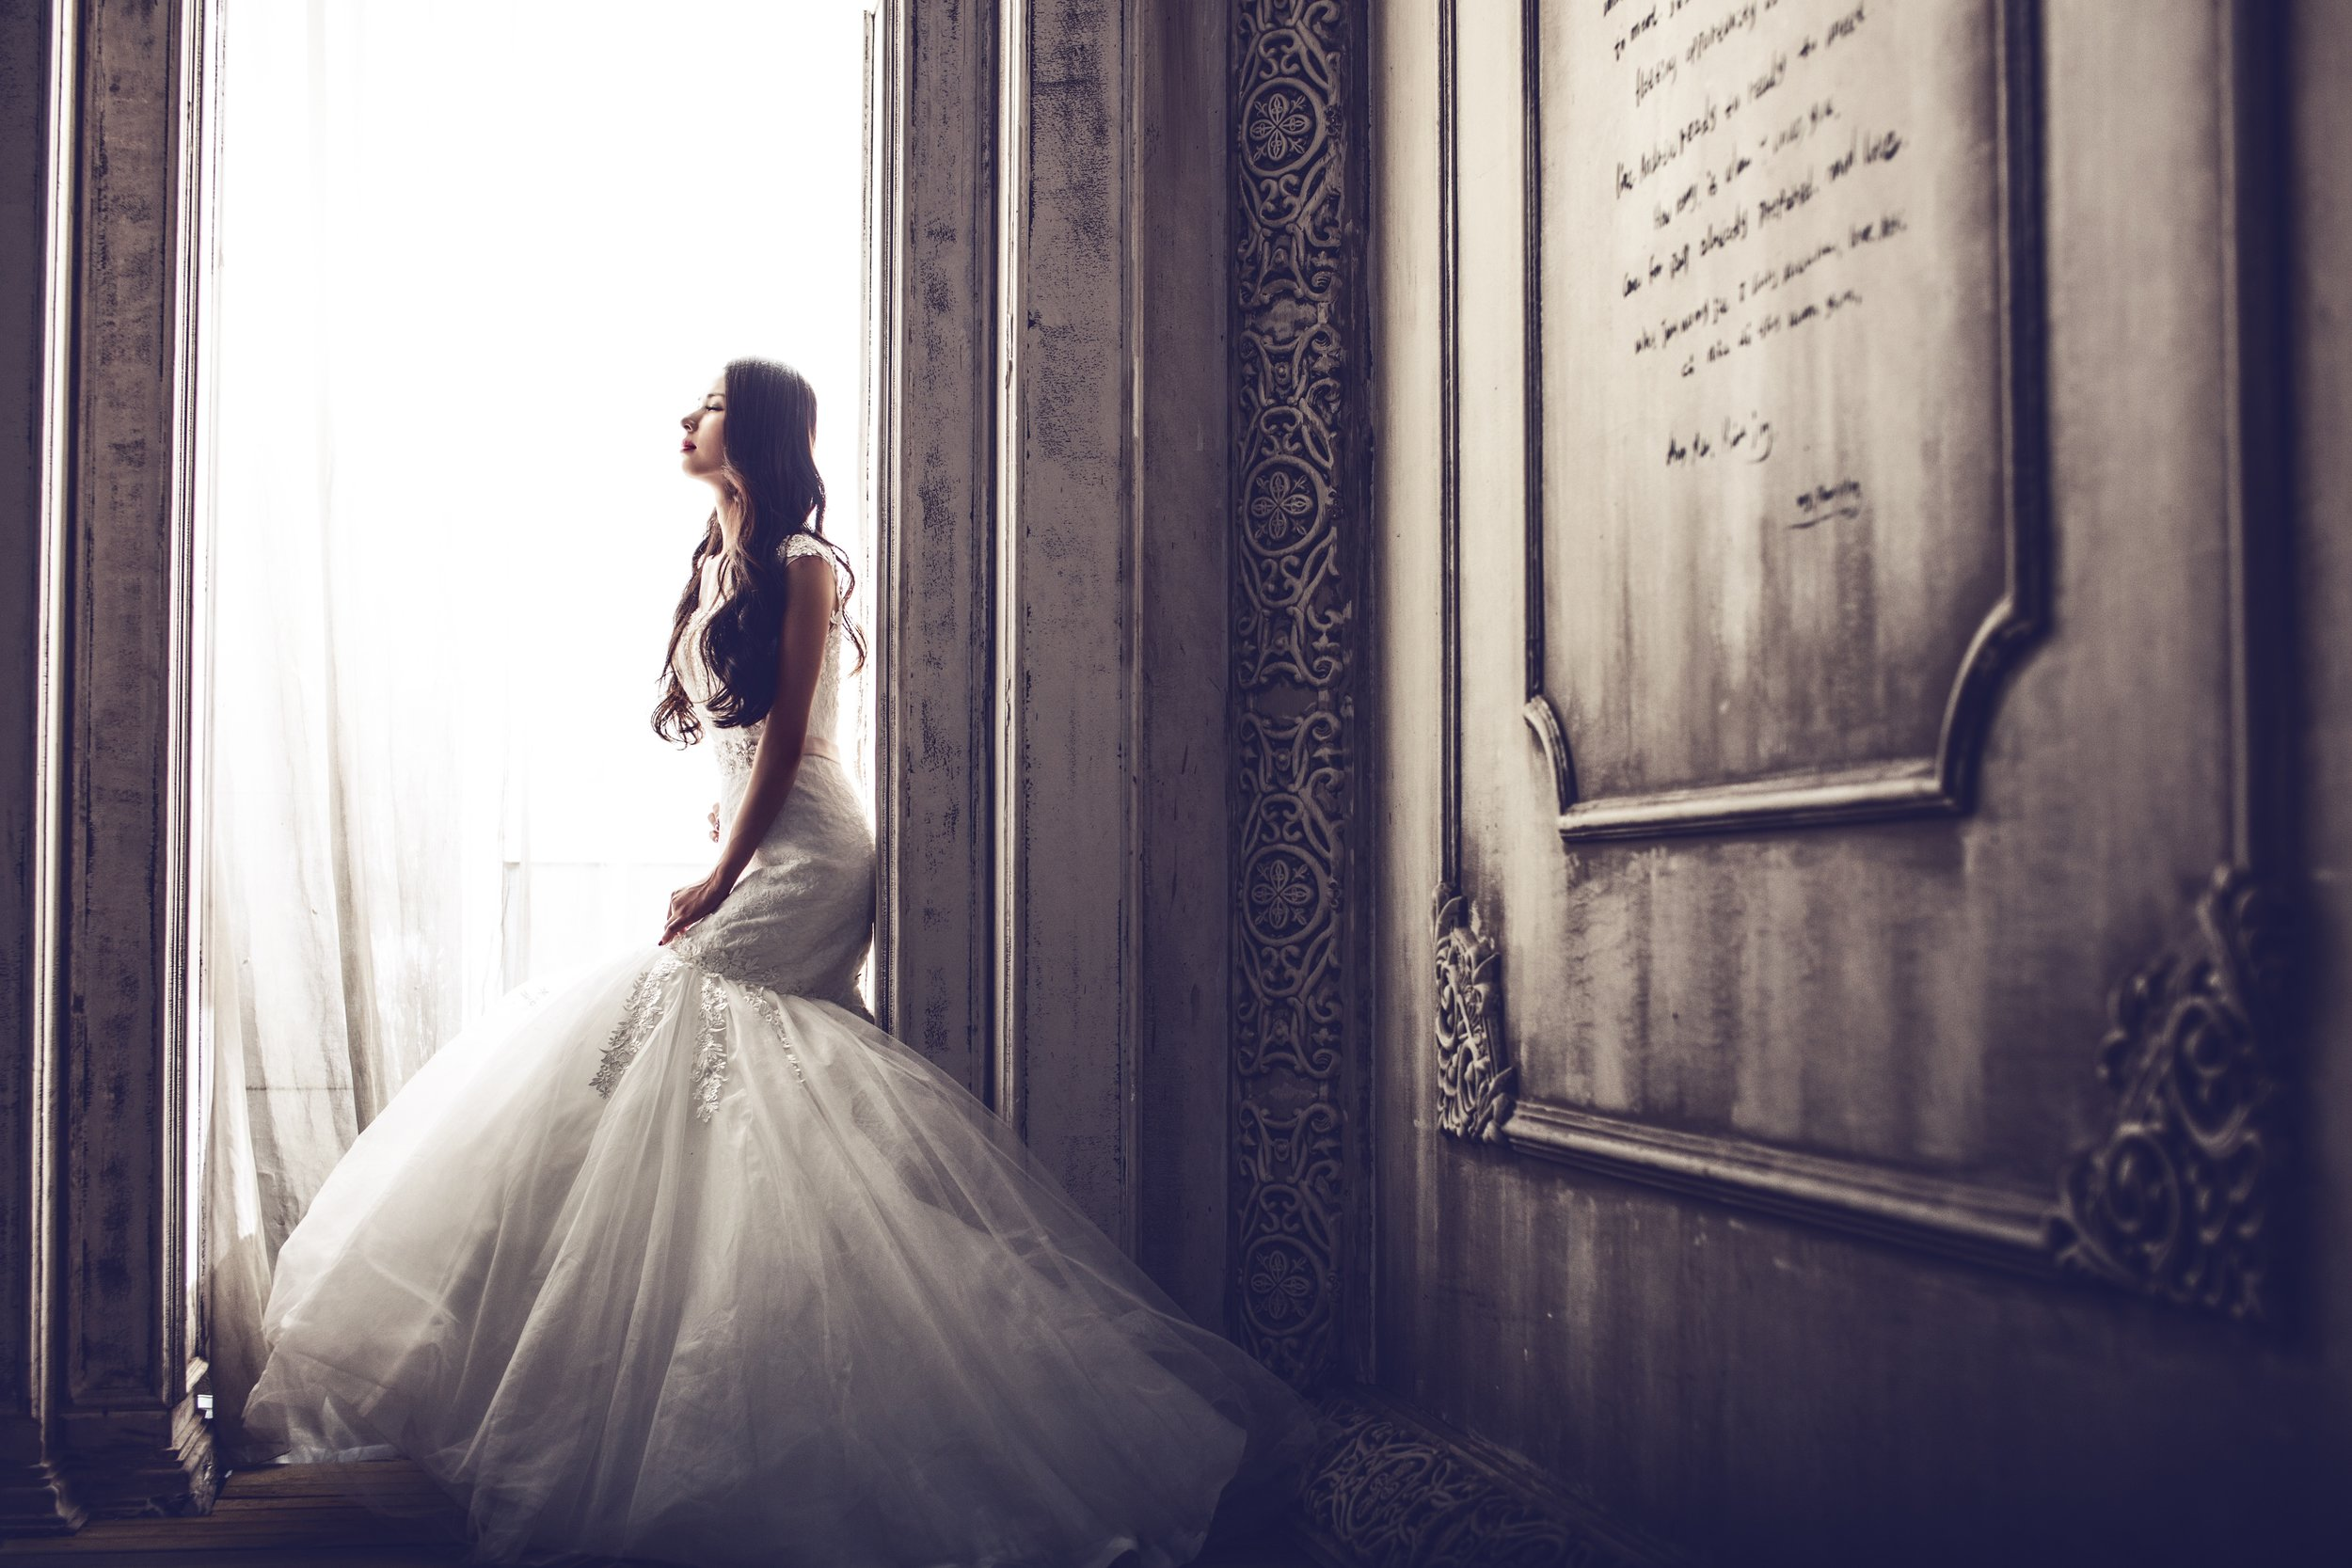 WEDDING VIDEO $1599 - 2 VIDEOGRAPHERS/ 8 HOURS OF COVERAGE